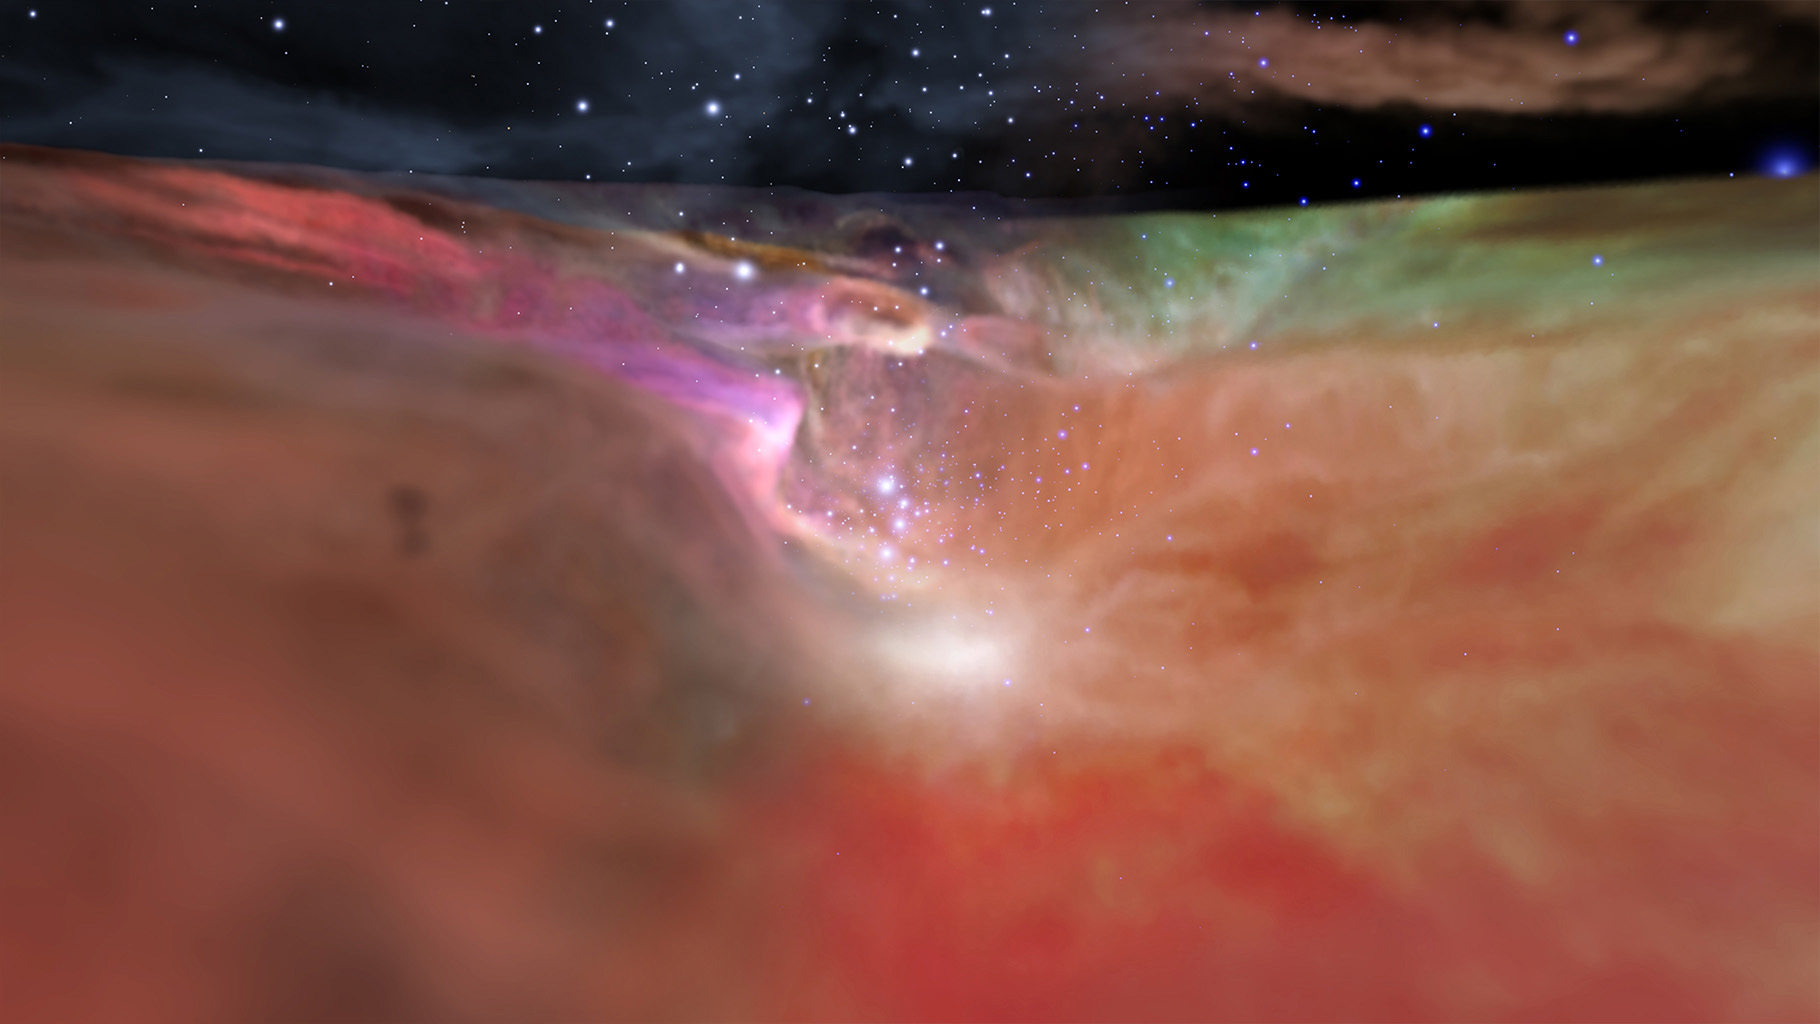 This image showcases both the visible and infrared visualizations of the Orion Nebula. Image Credit: NASA, ESA, F. Summers, G. Bacon, Z. Levay, J. DePasquale, L. Frattare, M. Robberto and M. Gennaro of STScI, and R. Hurt of Caltech/IPAC